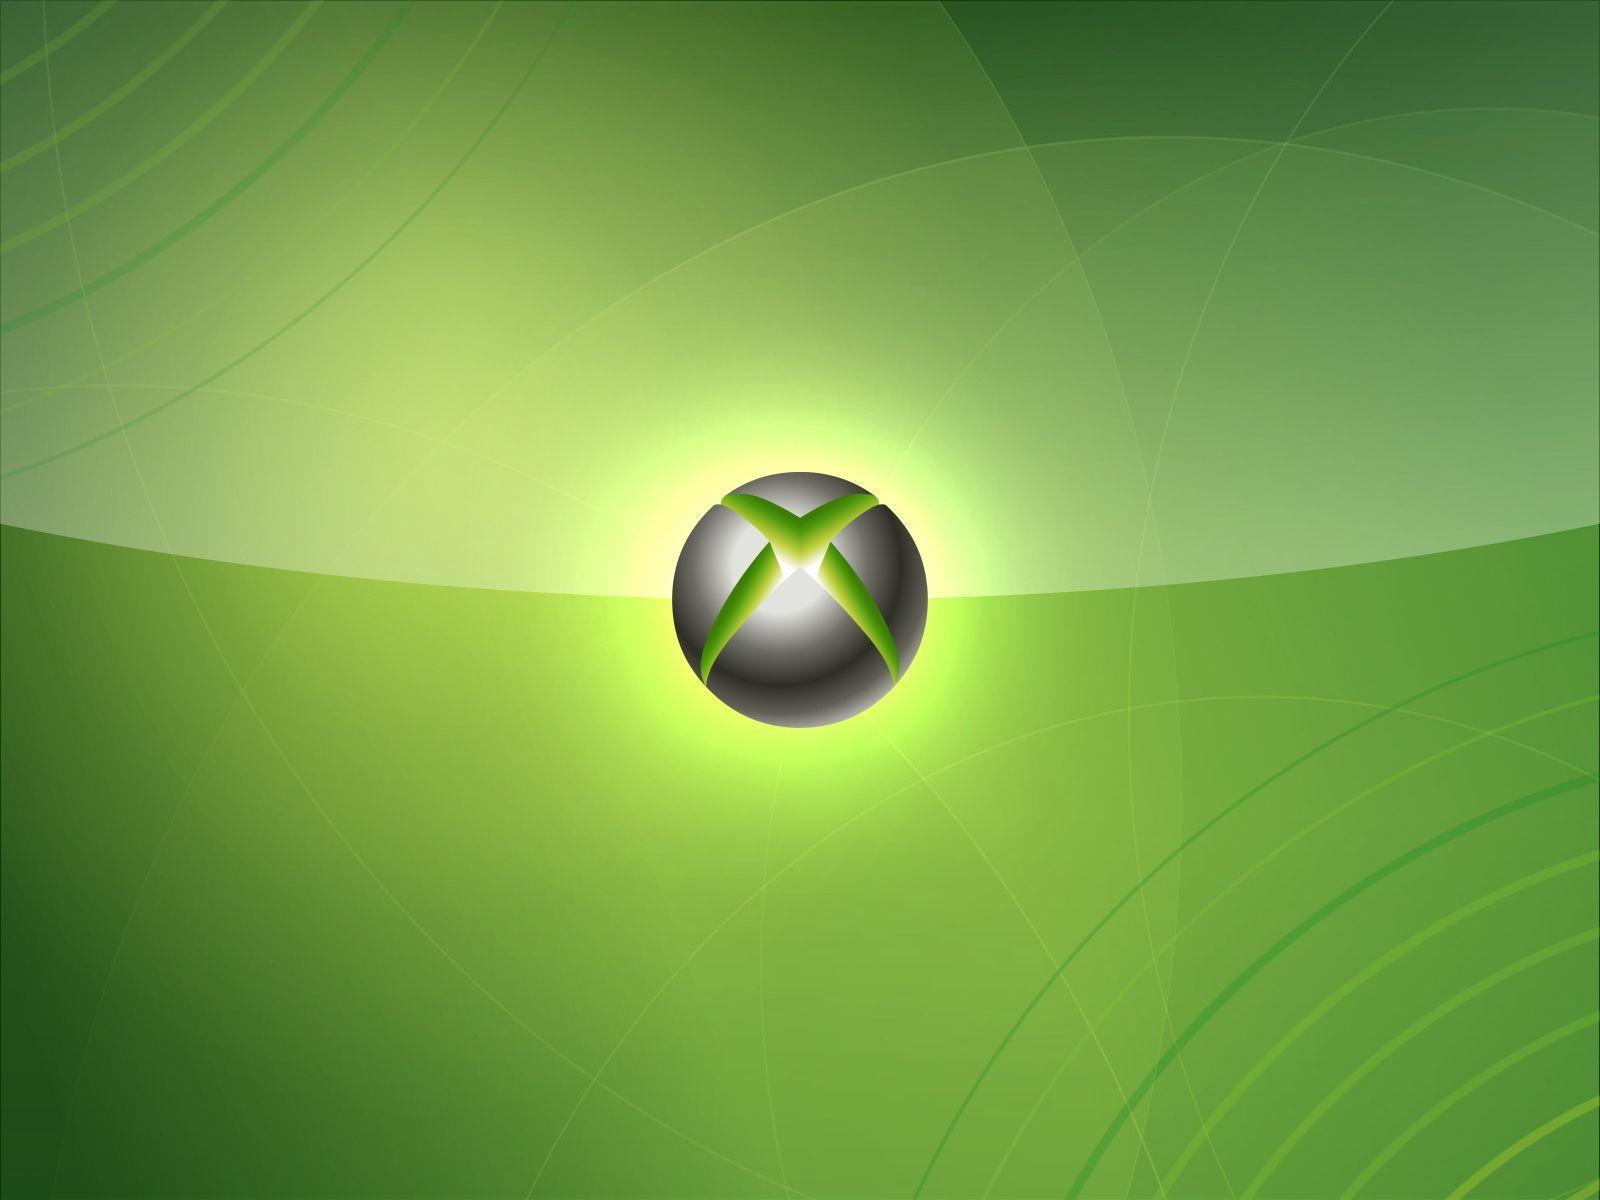 xbox logo wallpapers wallpaper cave. Black Bedroom Furniture Sets. Home Design Ideas